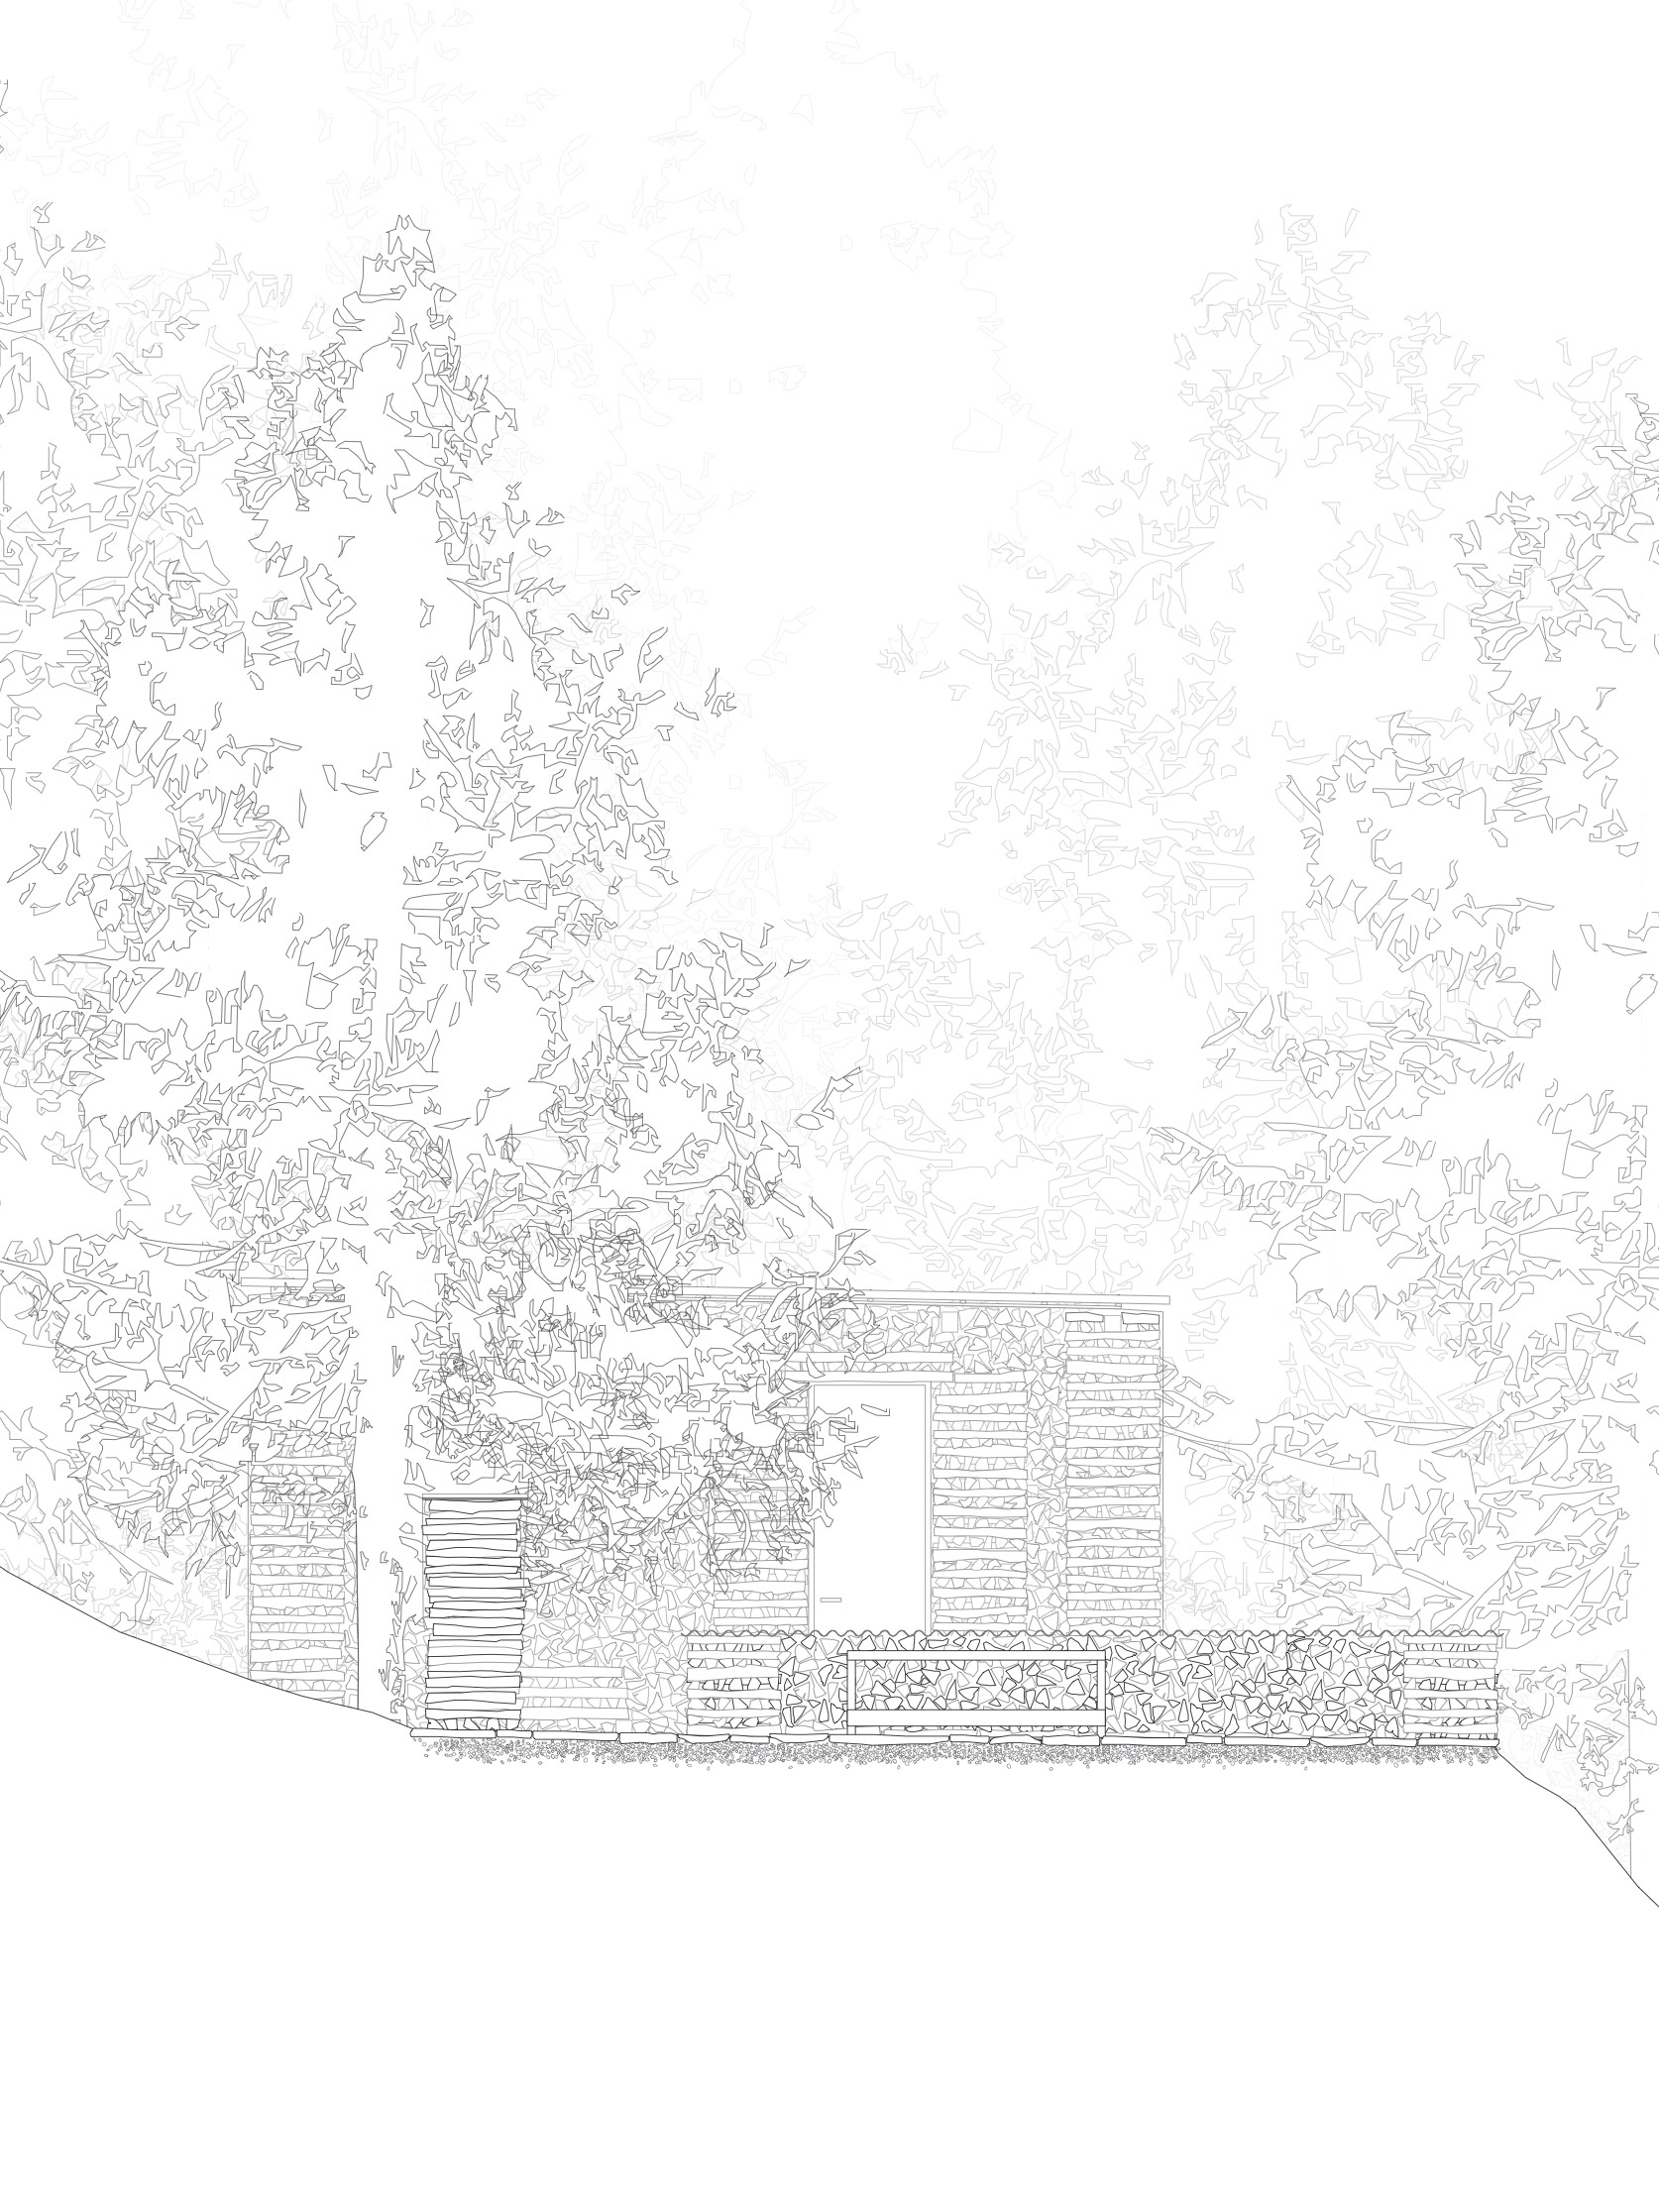 clients image about forest teahouse from eth architecture diploma